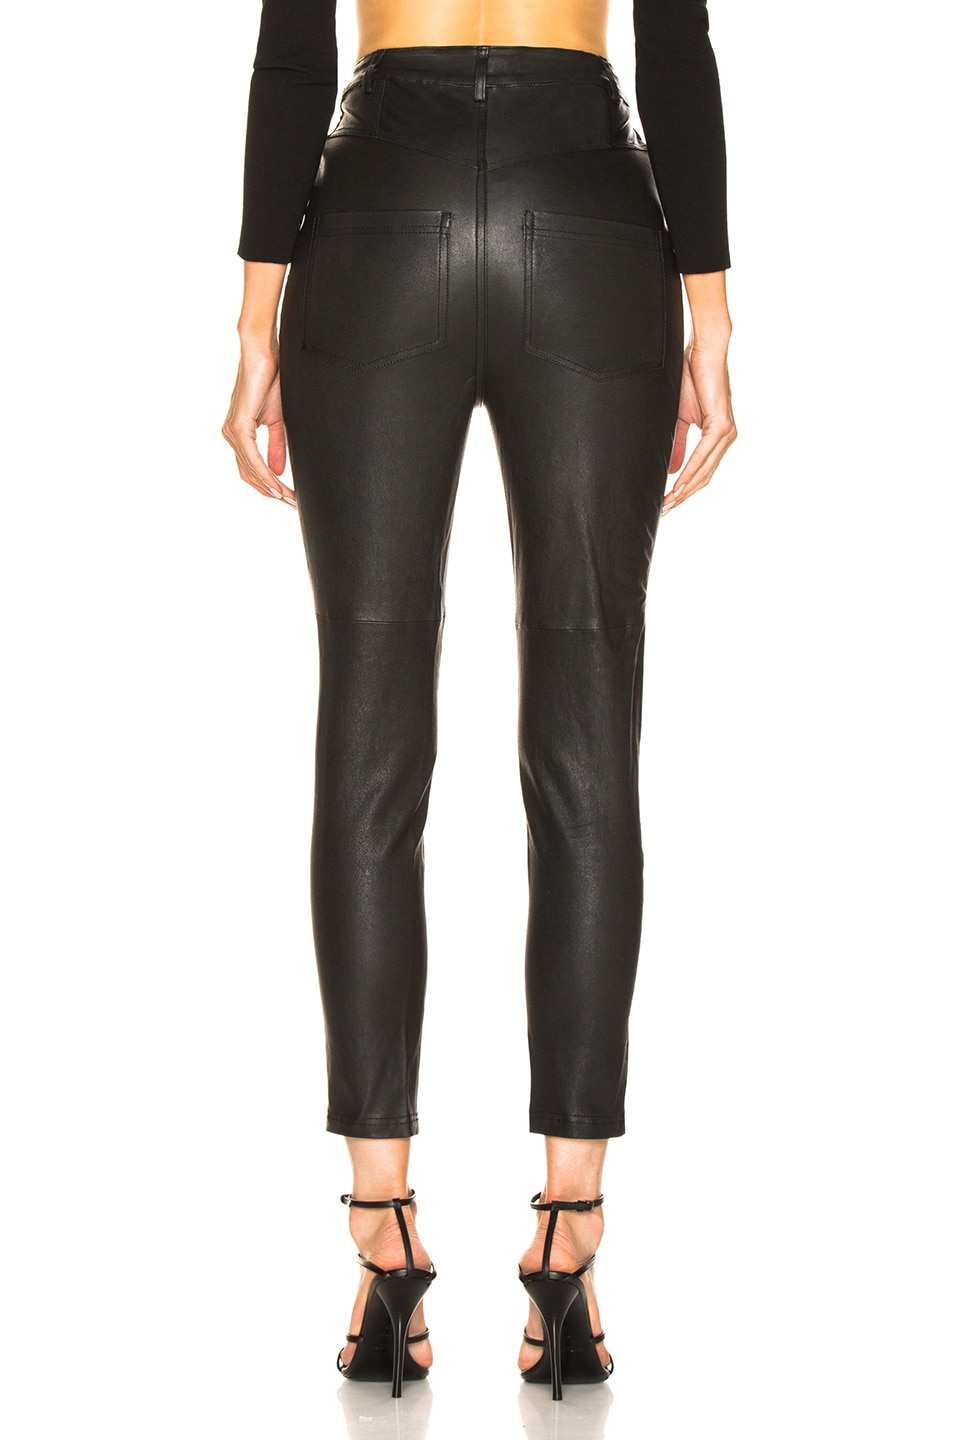 Image 3 of Marissa Webb Alma Stretch Leather Pant in Black